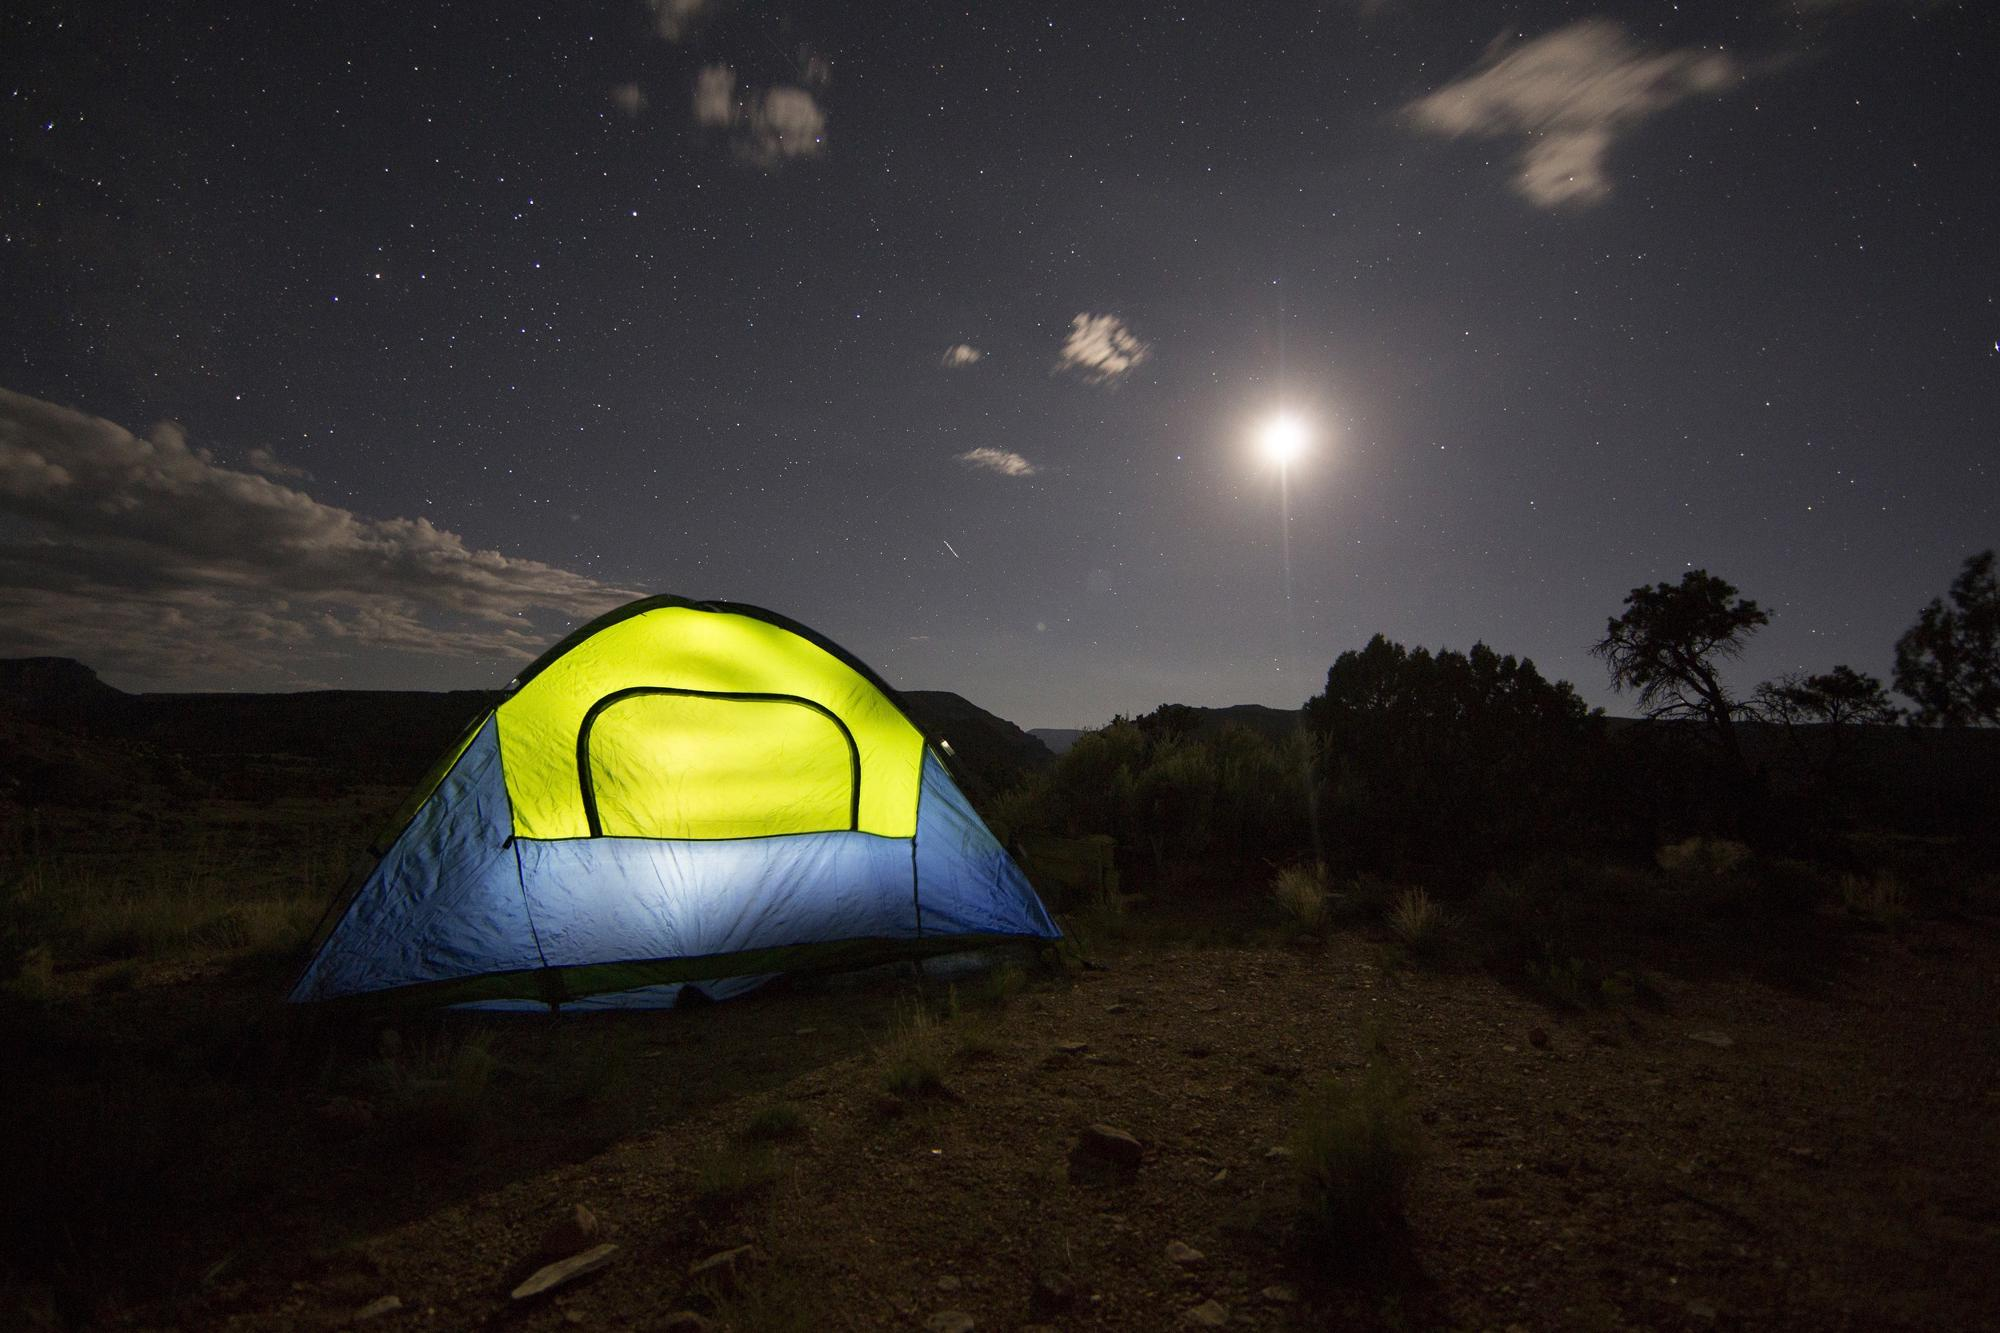 Wild Camping – Tips and advice for free camping in the wilderness